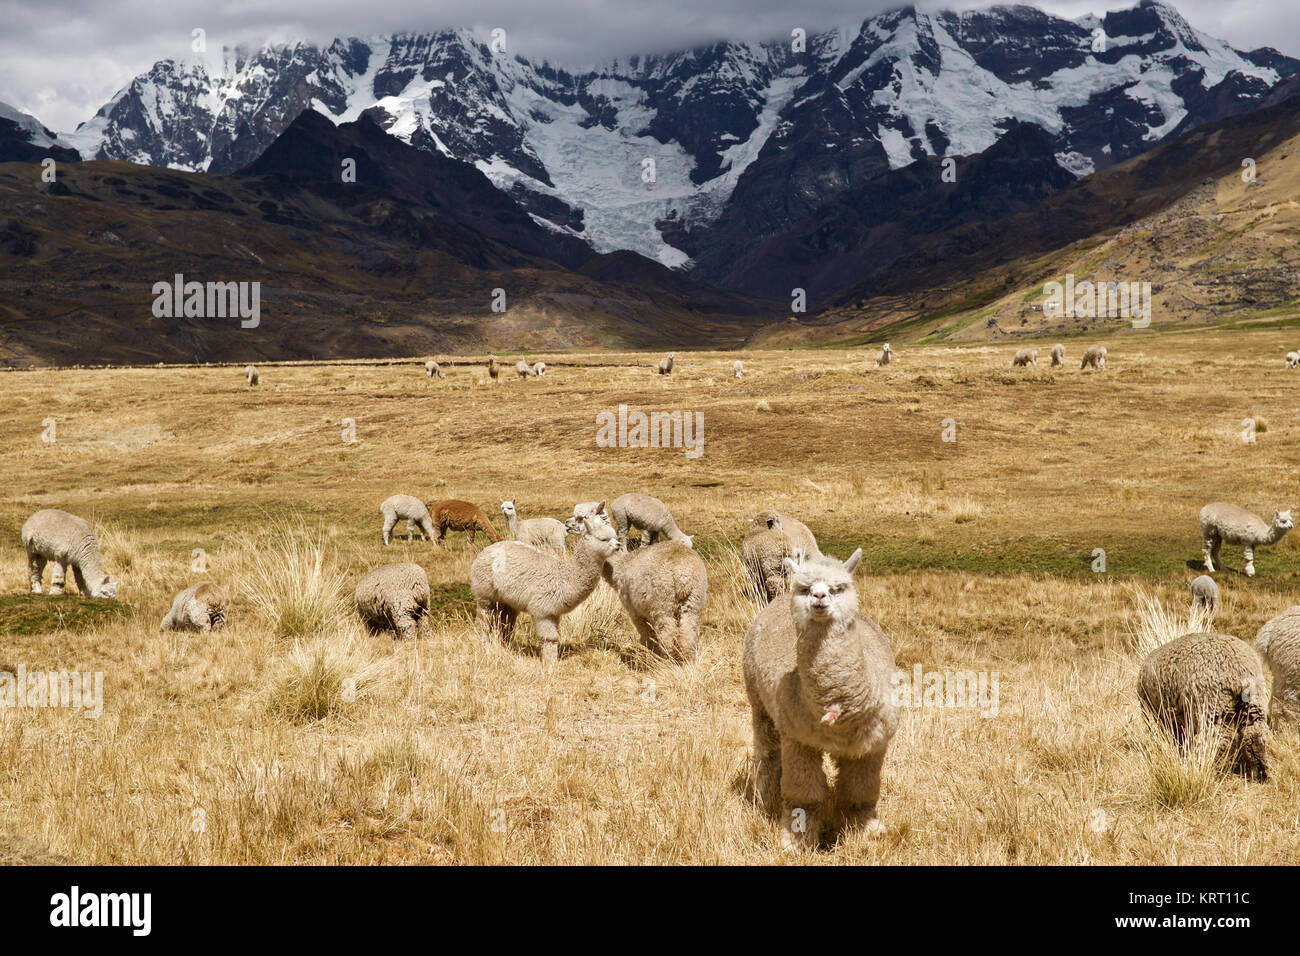 Herd of alpacas grazing on the pastures with glacier of Apu Ausangate behind them Stock Photo